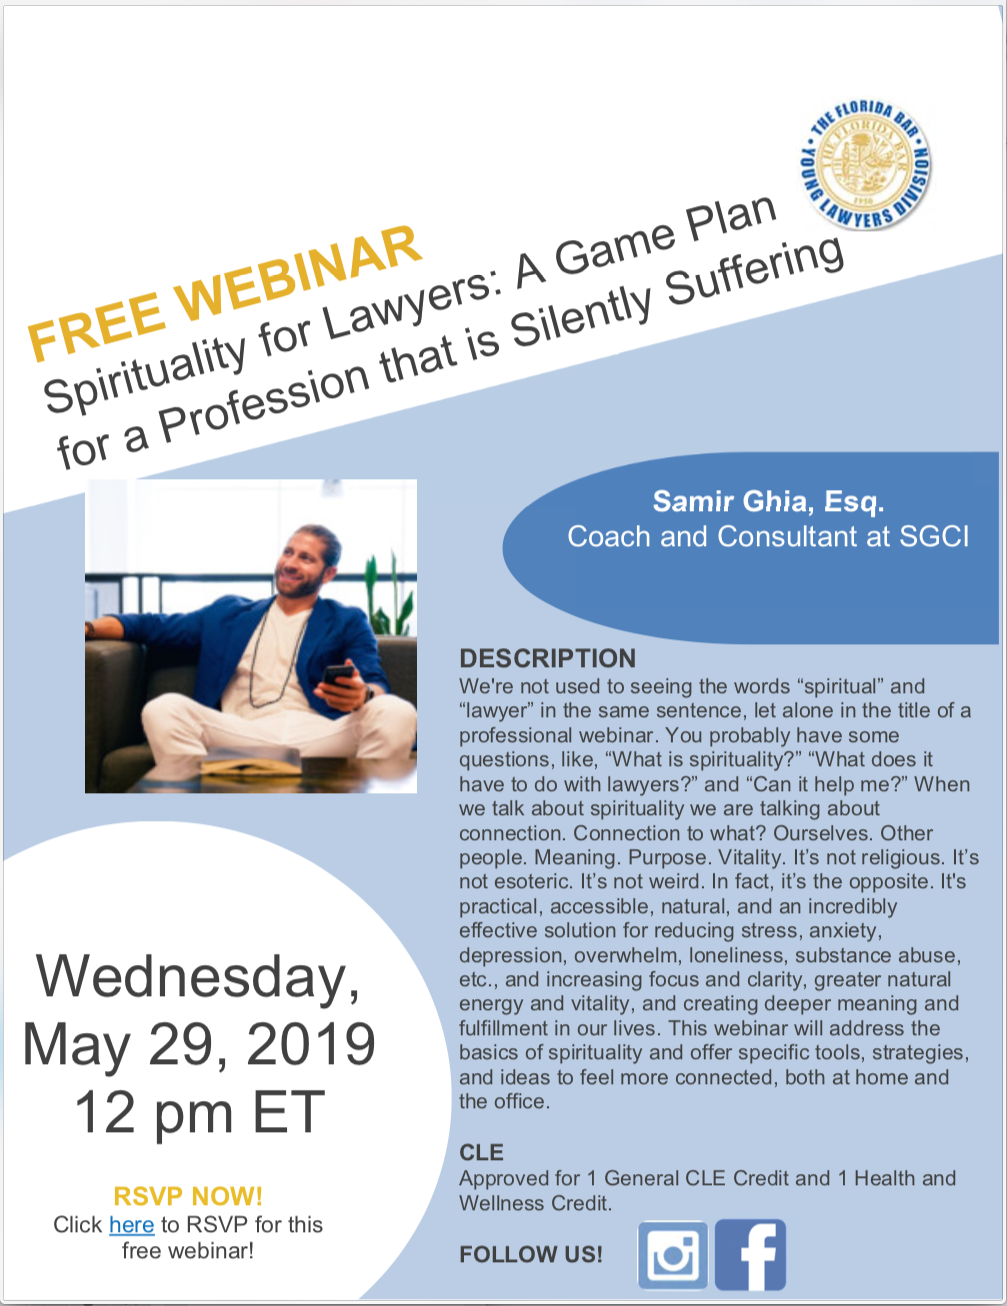 "Wednesday, May 29, 2019, 12pm: Free Webinar, Spirituality for Lawyers: A Game Plan for a Profession that is Silently Suffering, Samir Ghia, Esq. Coach and Consultant at SGCI, DESCRIPTION We're not used to seeing the words ""spiritual"" and ""lawyer"" in the same sentence, let alone in the title of a professional webinar. You probably have some questions, like, ""What is spirituality?"" ""What does it have to do with lawyers?"" and ""Can it help me?"" When we talk about spirituality we are talking about connection. Connection to what? Ourselves. Other people. Meaning. Purpose. Vitality. It's not religious. It's not esoteric. It's not weird. In fact, it's the opposite. It's practical, accessible, natural, and an incredibly effective solution for reducing stress, anxiety, depression, overwhelm, loneliness, substance abuse, etc., and increasing focus and clarity, greater natural energy and vitality, and creating deeper meaning and fulfillment in our lives. This webinar will address the basics of spirituality and offer specific tools, strategies, and ideas to feel more connected, both at home and the office. CLE Approved for 1 General CLE Credit and 1 Health and Wellness Credit. RSVP NOW! Click here to RSVP for this free webinar!"